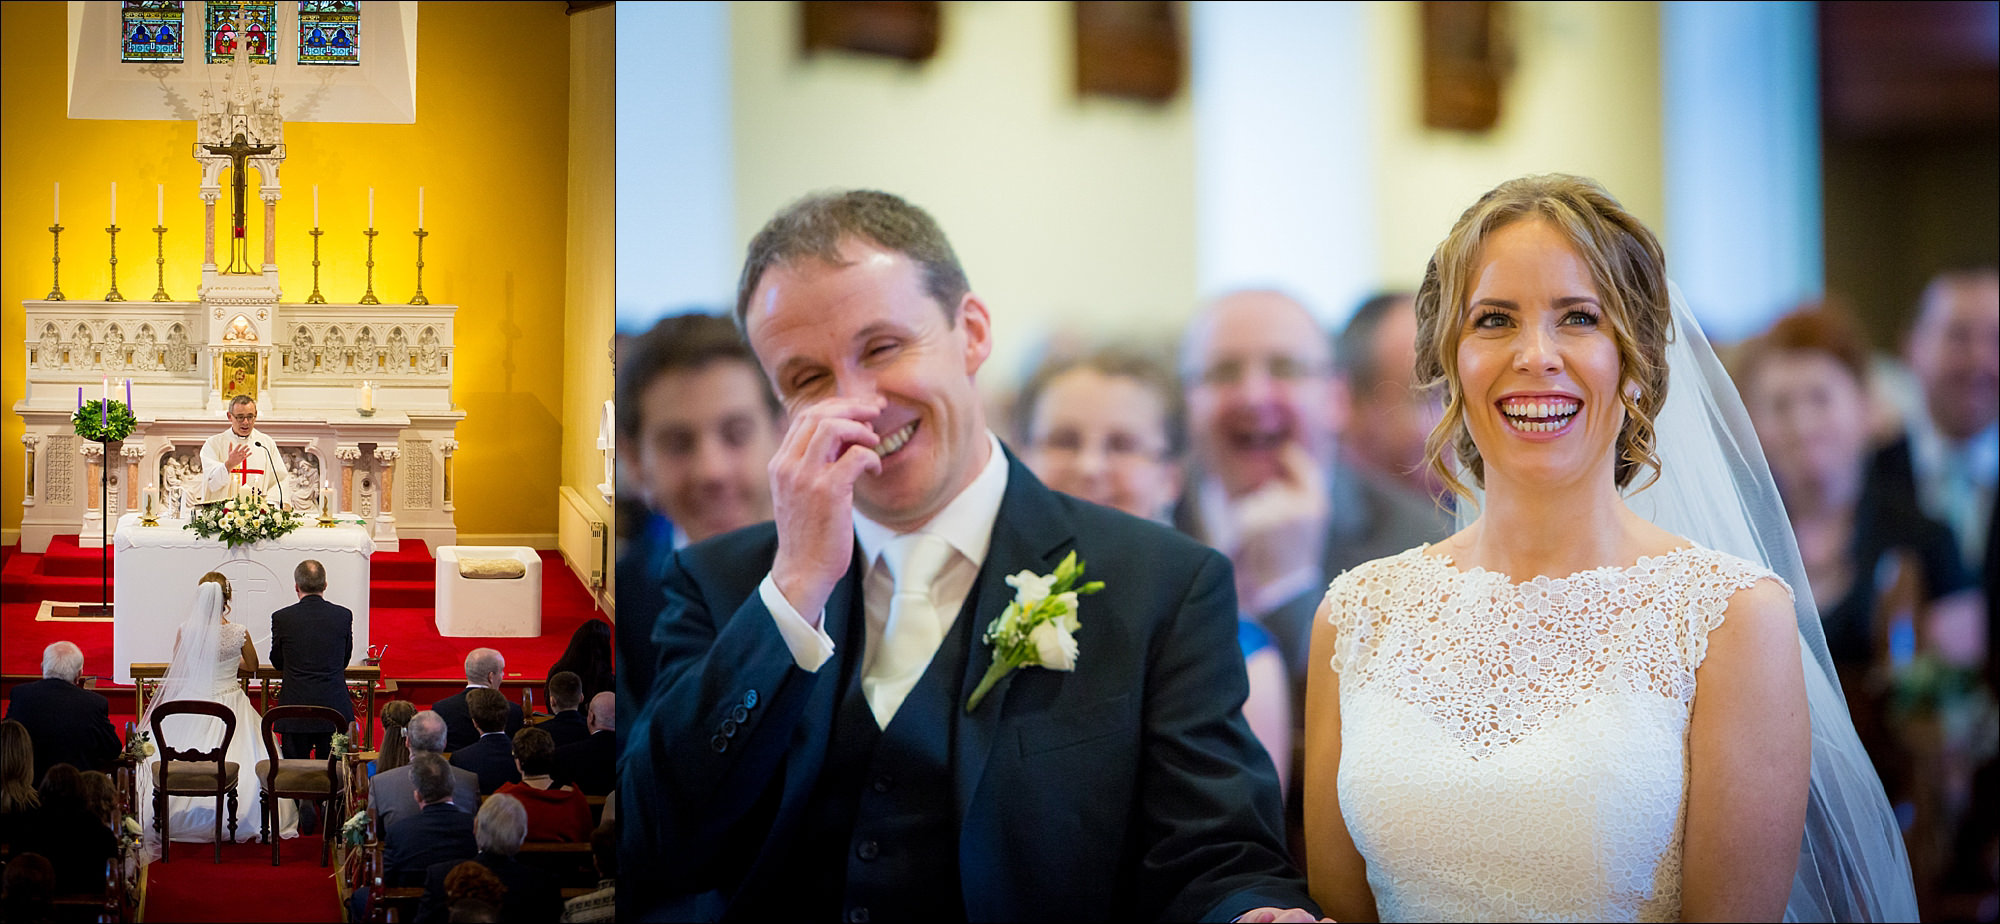 dublin wedding photographer david duignan photography tankardstown weddings slane rathfeigh church ireland 0022